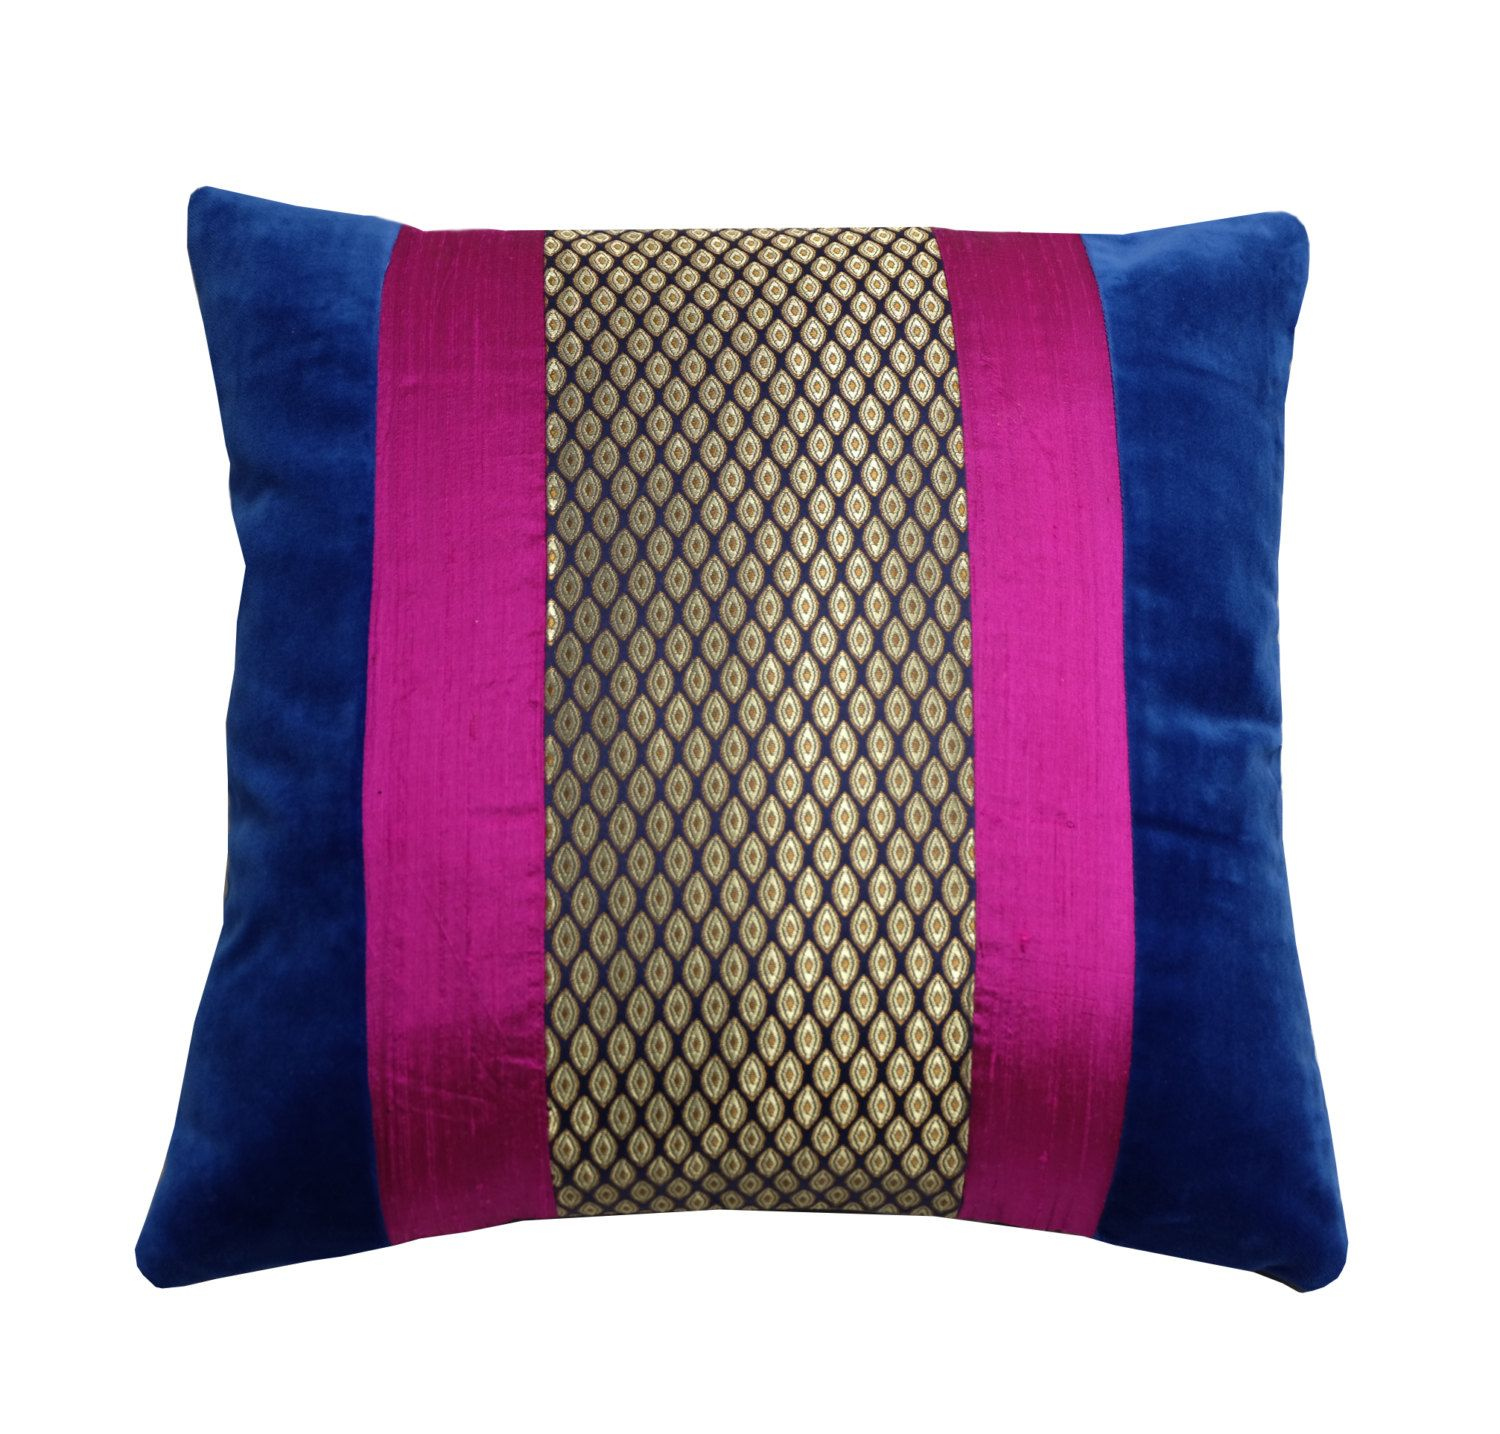 Blue Velvet Cushion Blue Velvet Cushion Cover Designers Guild Velvet Cushion